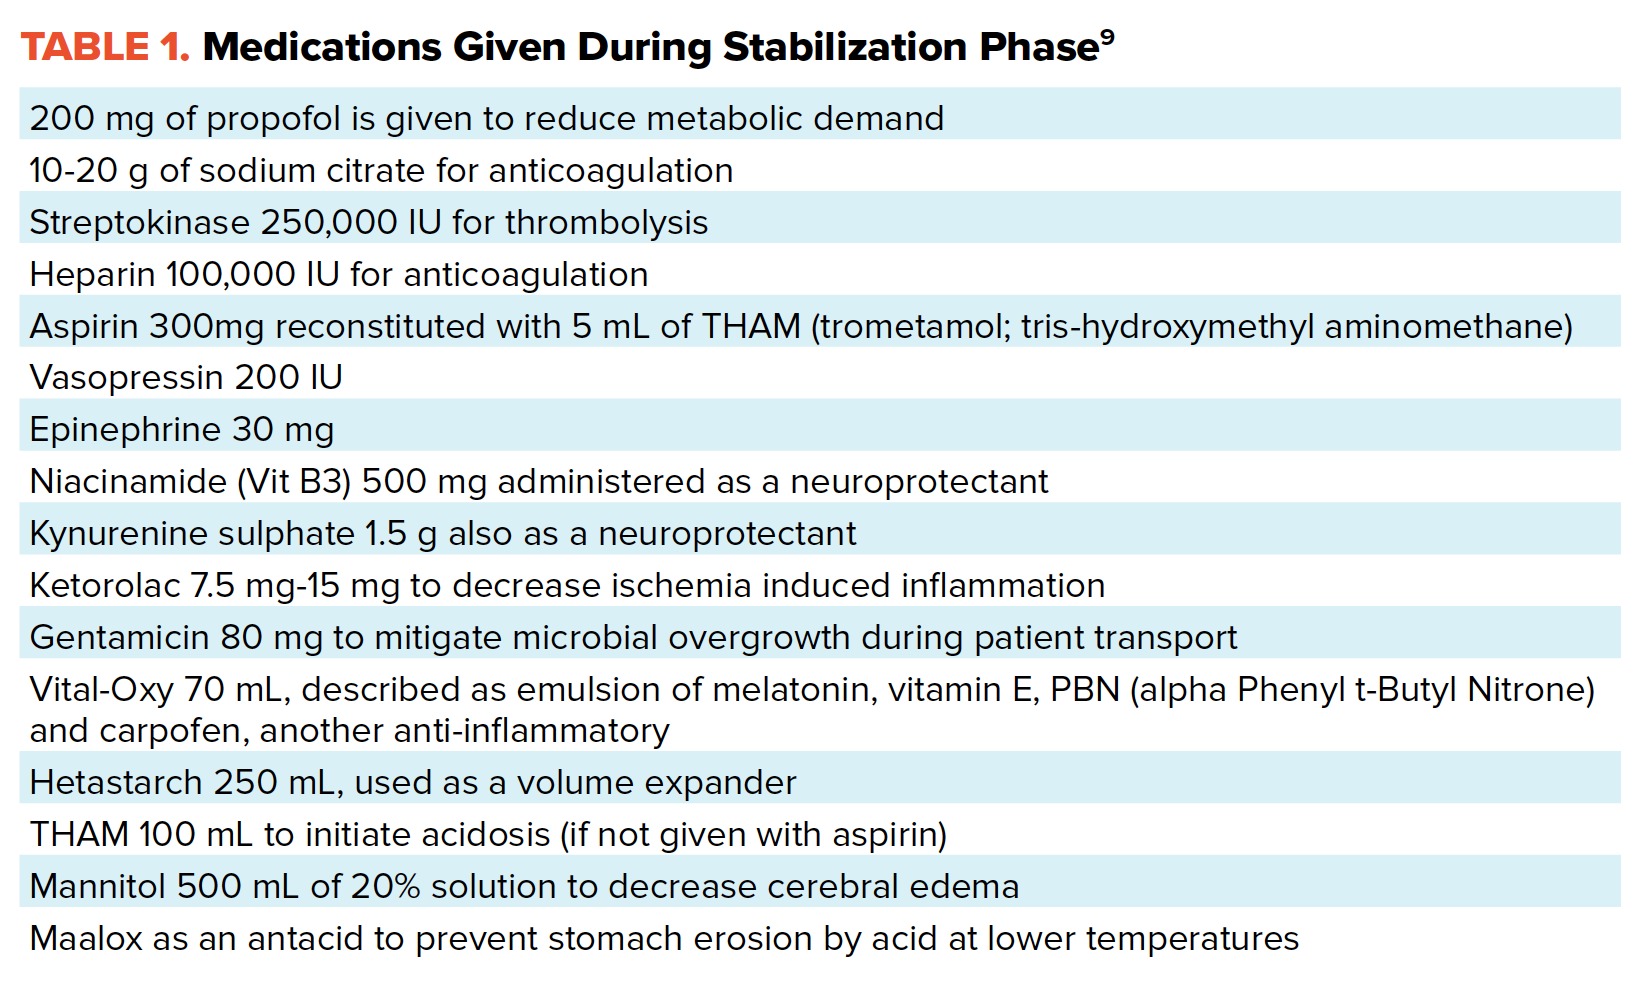 Table 1. Medications Given During Stabilization Phase